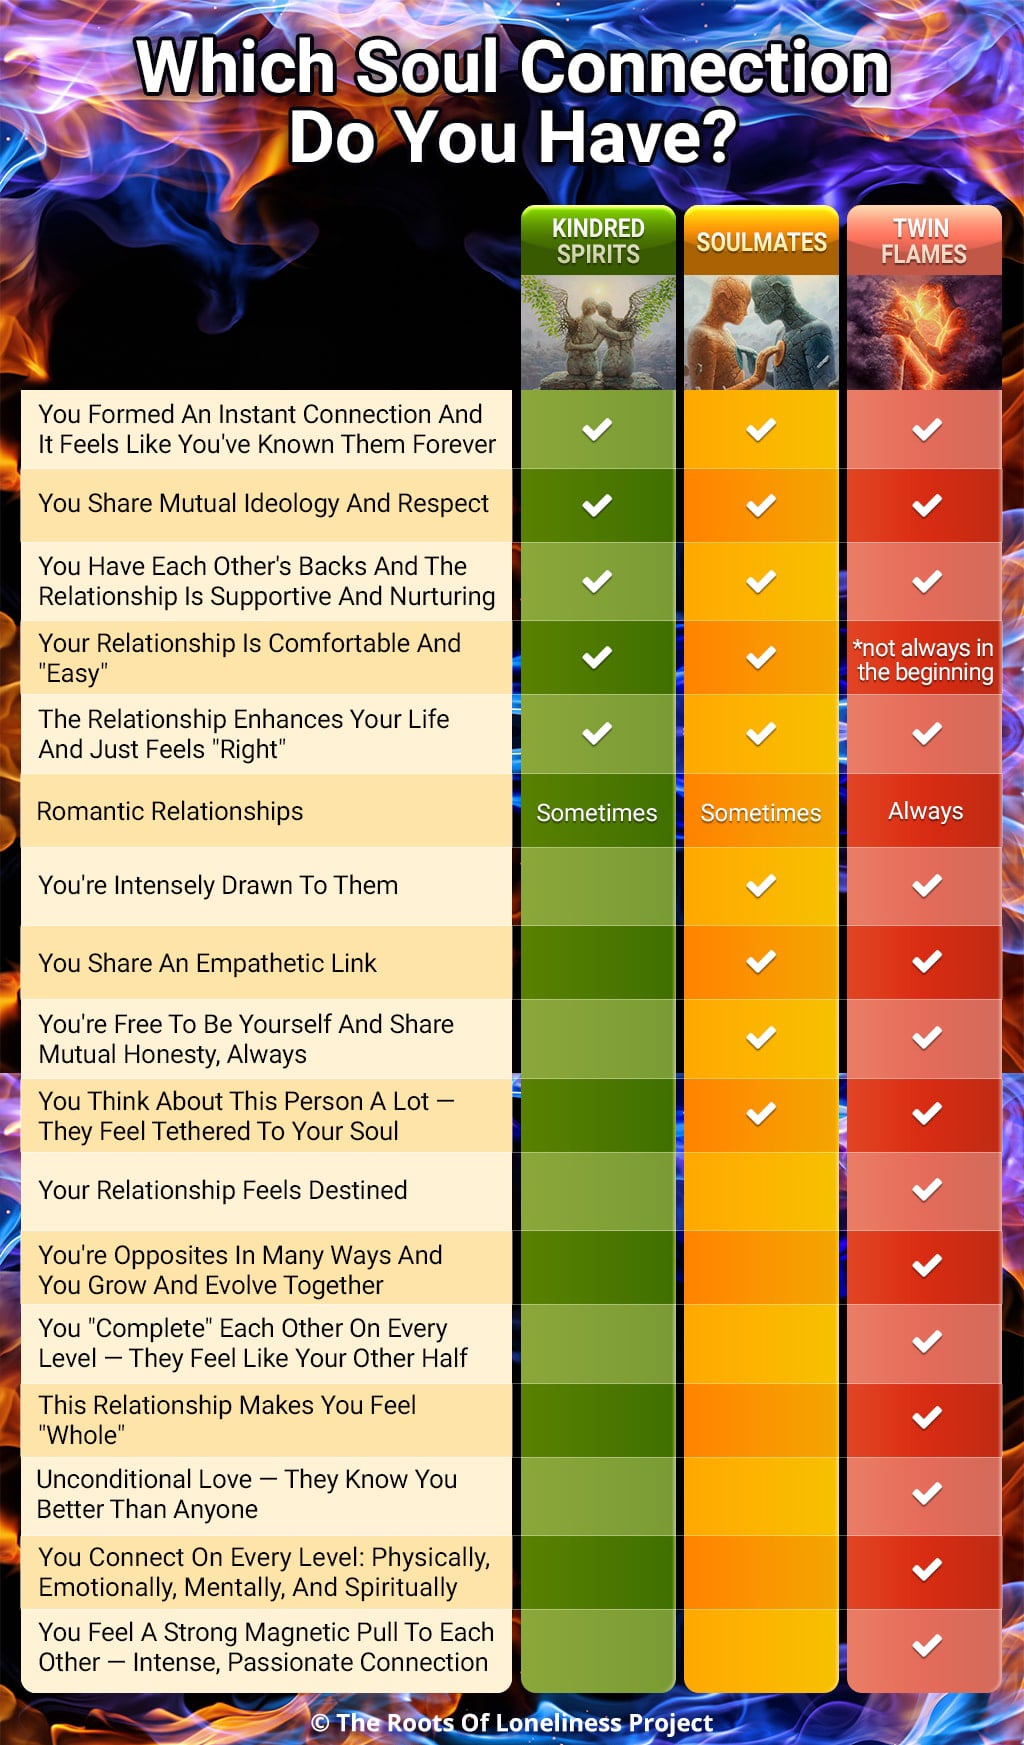 An Infographic Showing A Side-By-Side Comparison Between Kindred Spirits, Soulmates And Twin Flames